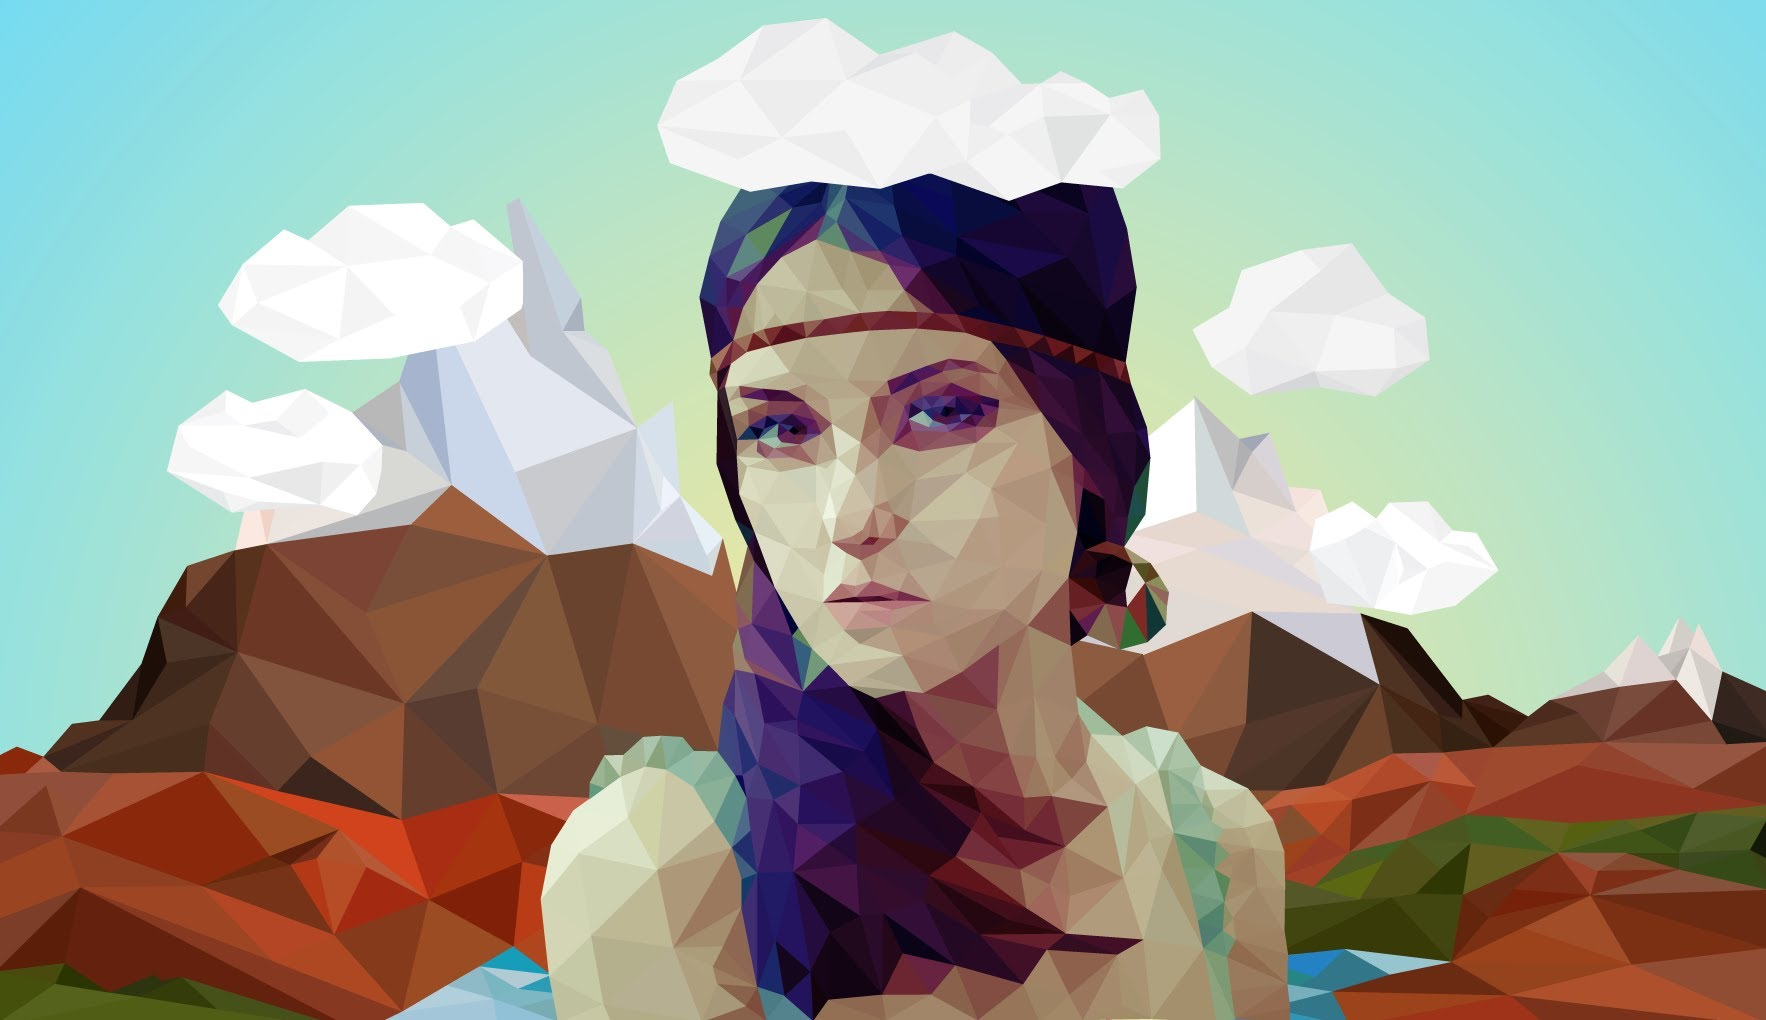 images?q=tbn:ANd9GcQh_l3eQ5xwiPy07kGEXjmjgmBKBRB7H2mRxCGhv1tFWg5c_mWT Best Of Vector Art Tutorial For Beginners @bookmarkpages.info